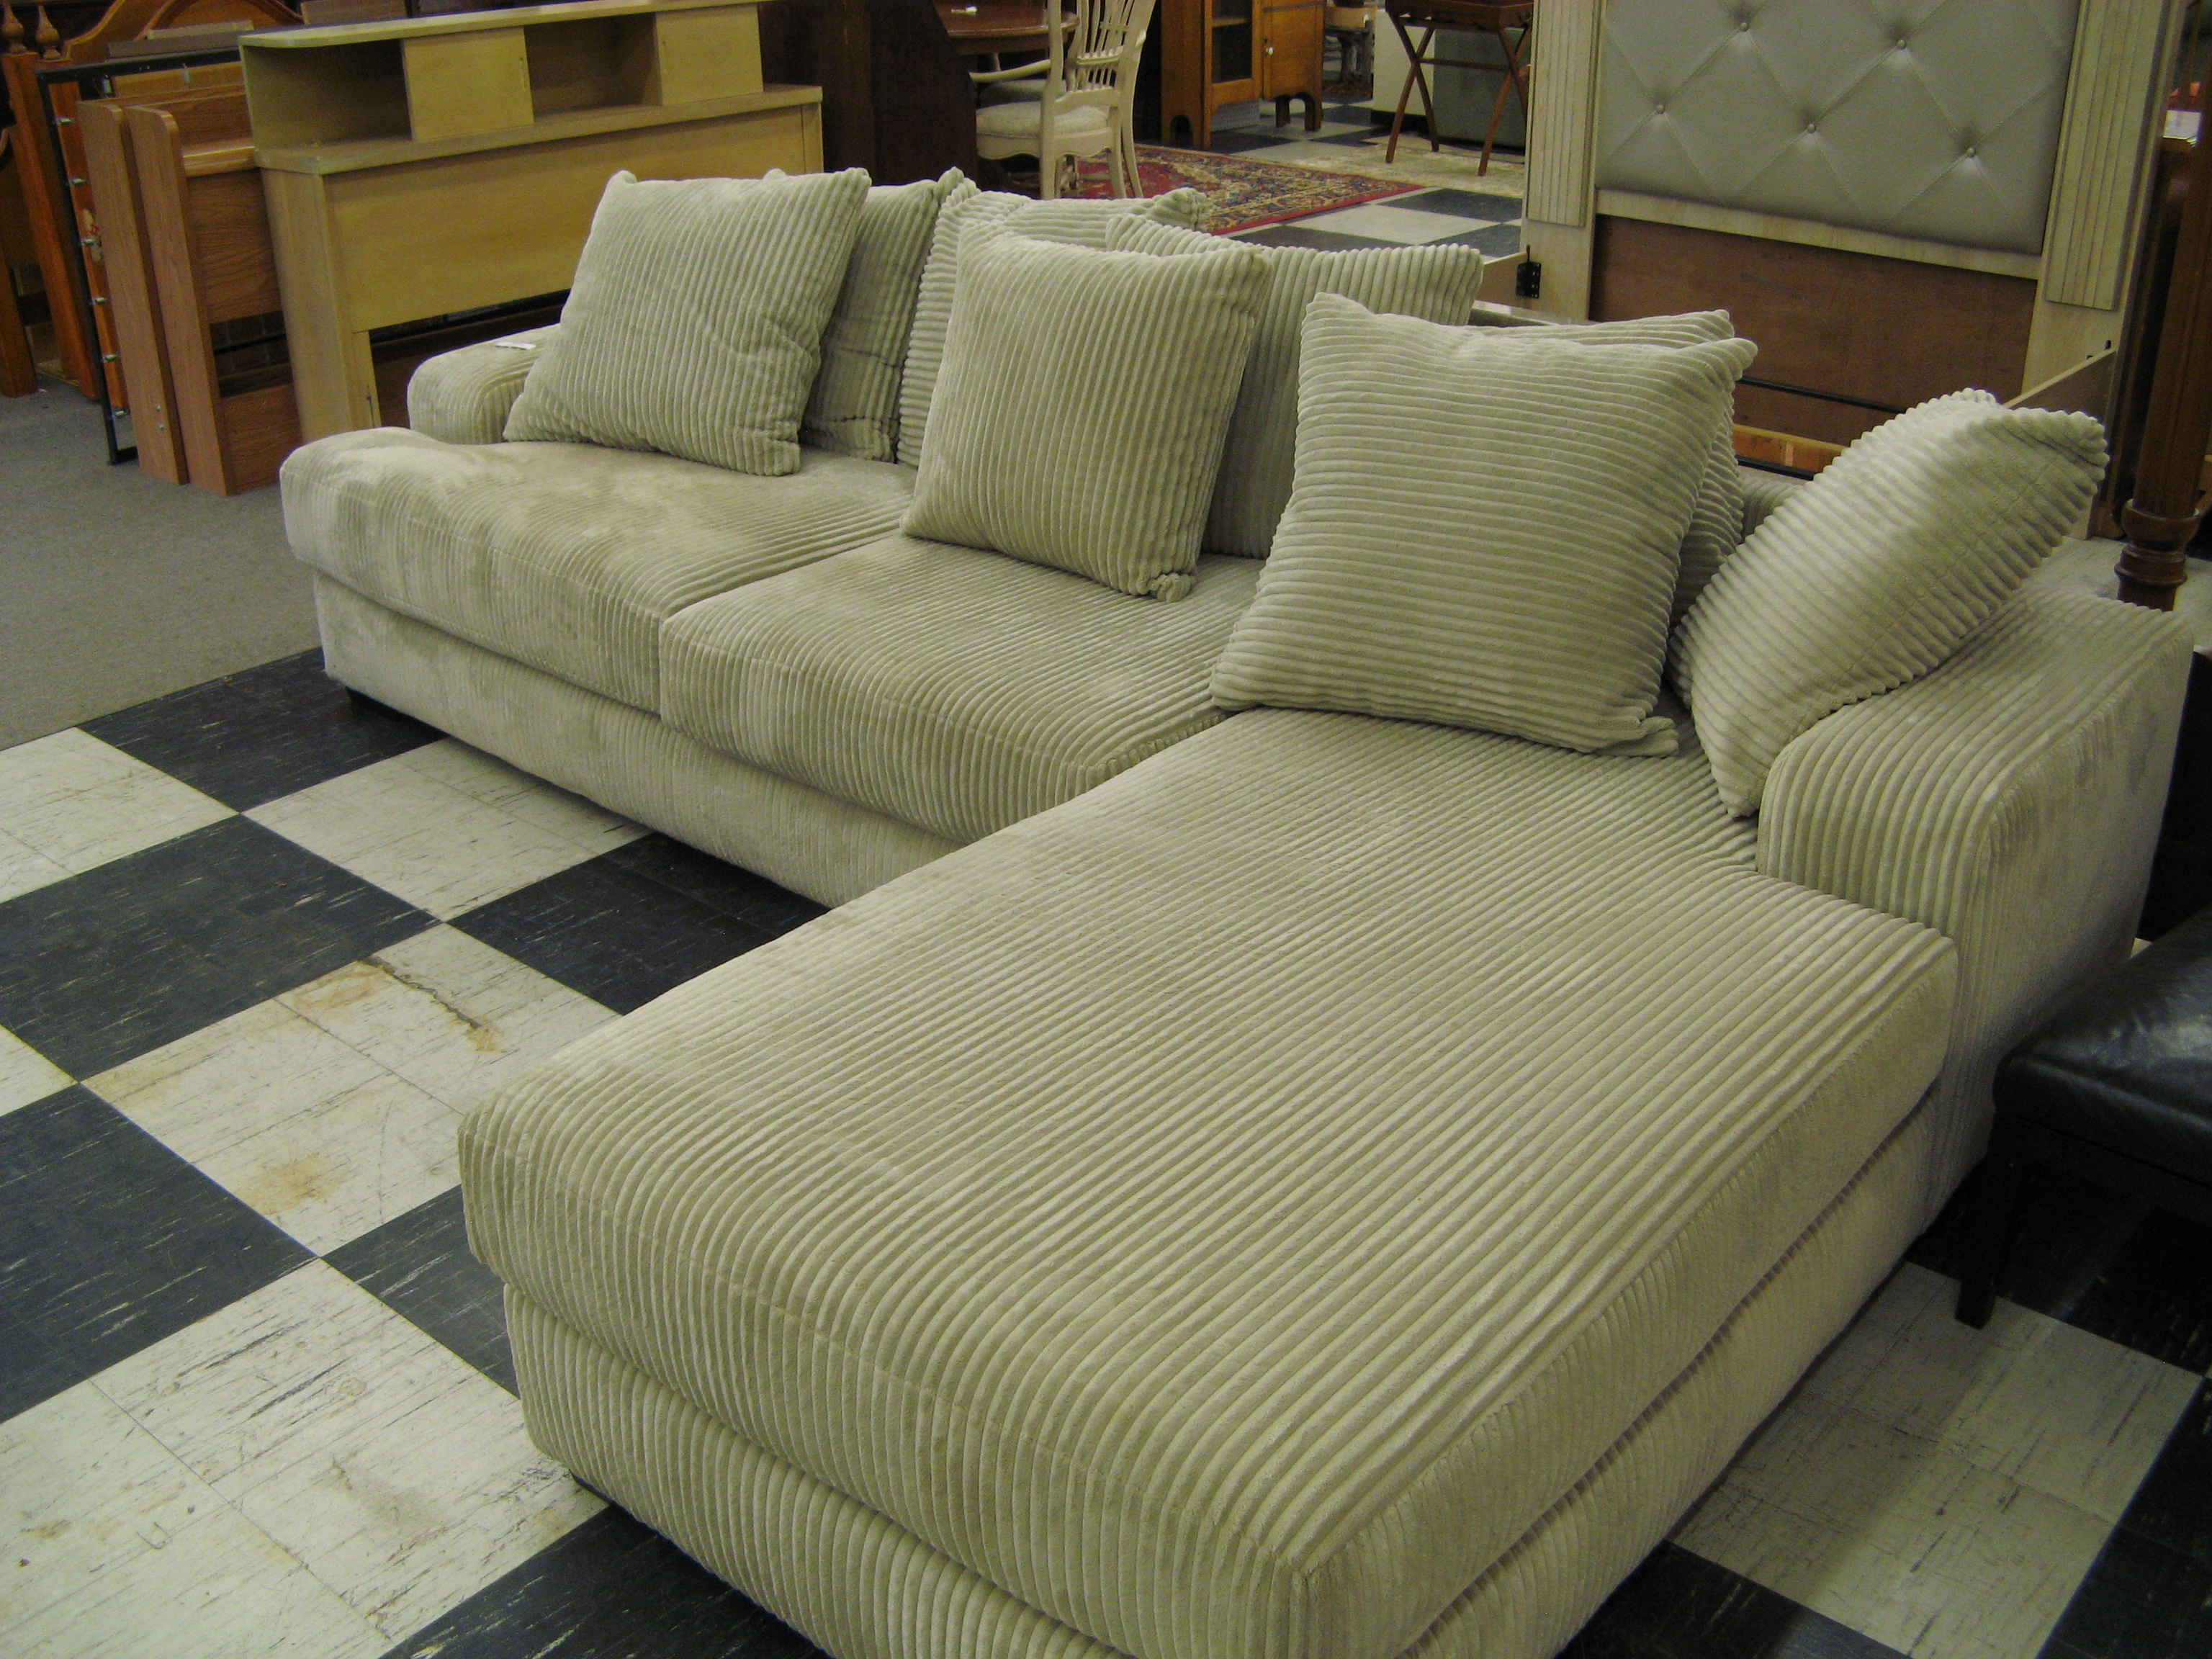 Off White Wide-Ribbed Corduroy Sofa w/Chaise & Pillows